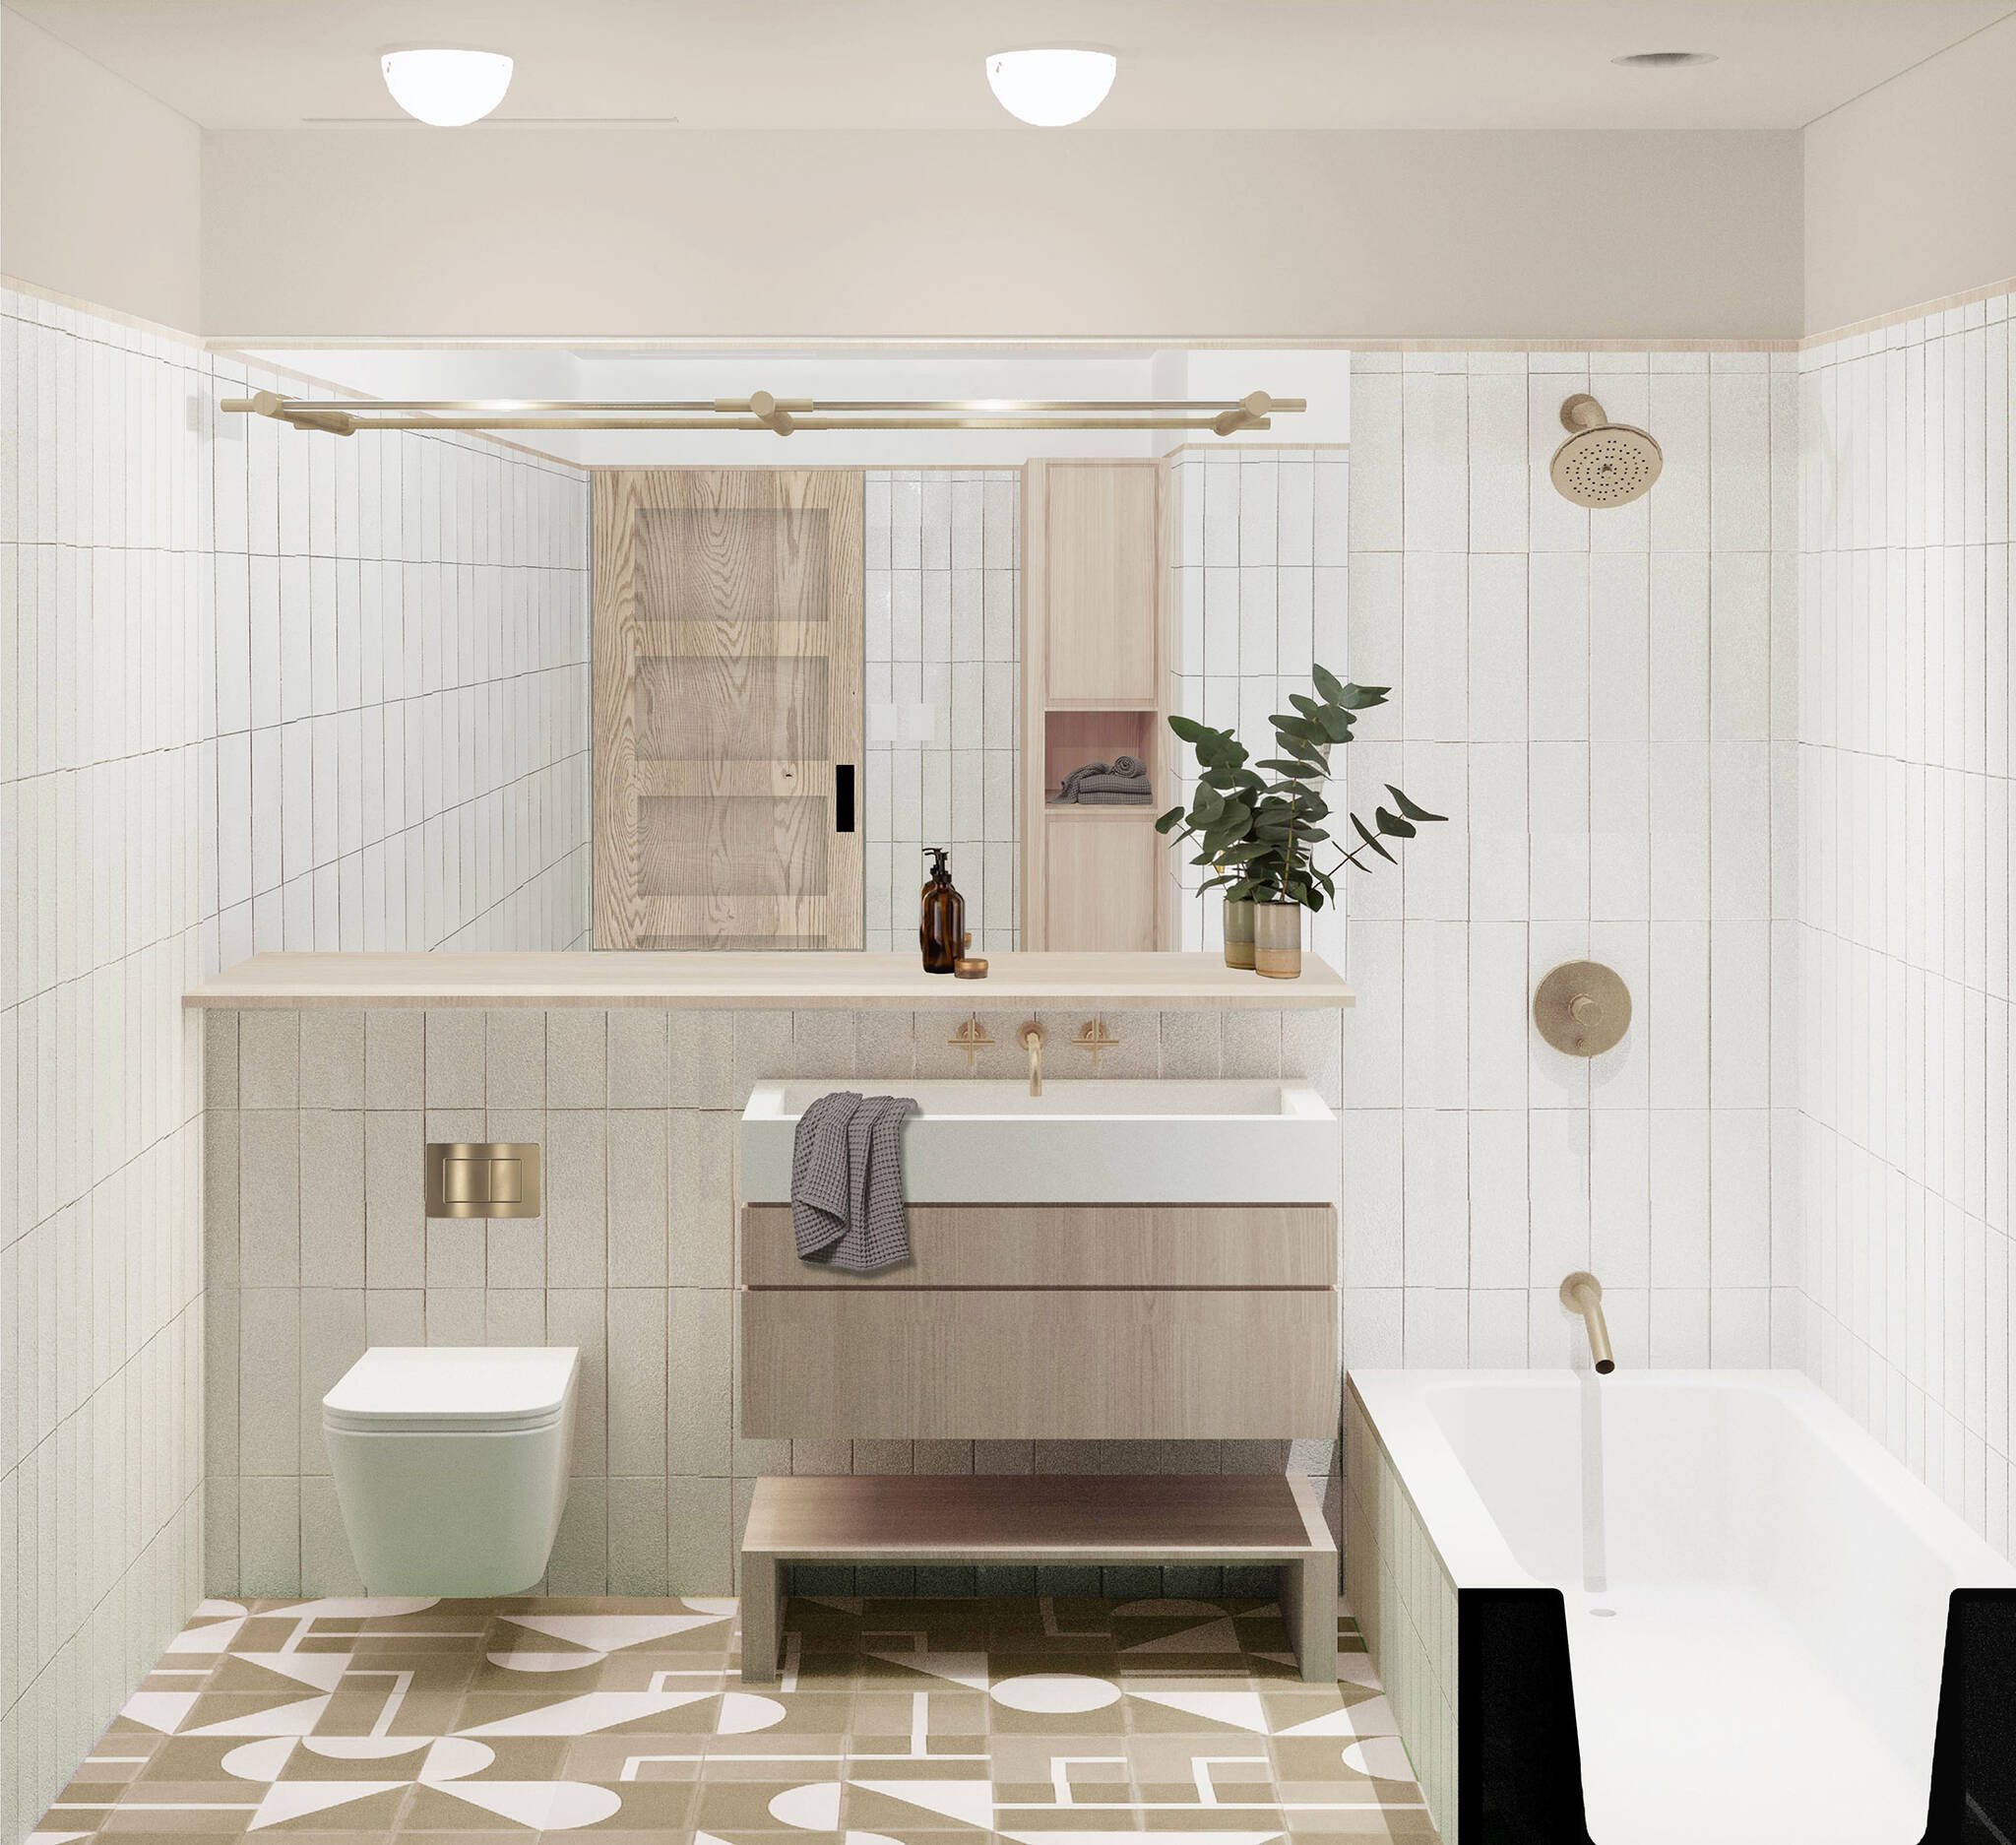 Full bathroom of the Residence renovation project on the East Side of Manhattan, New York City designed by the architecture studio Danny Forster & Architecture